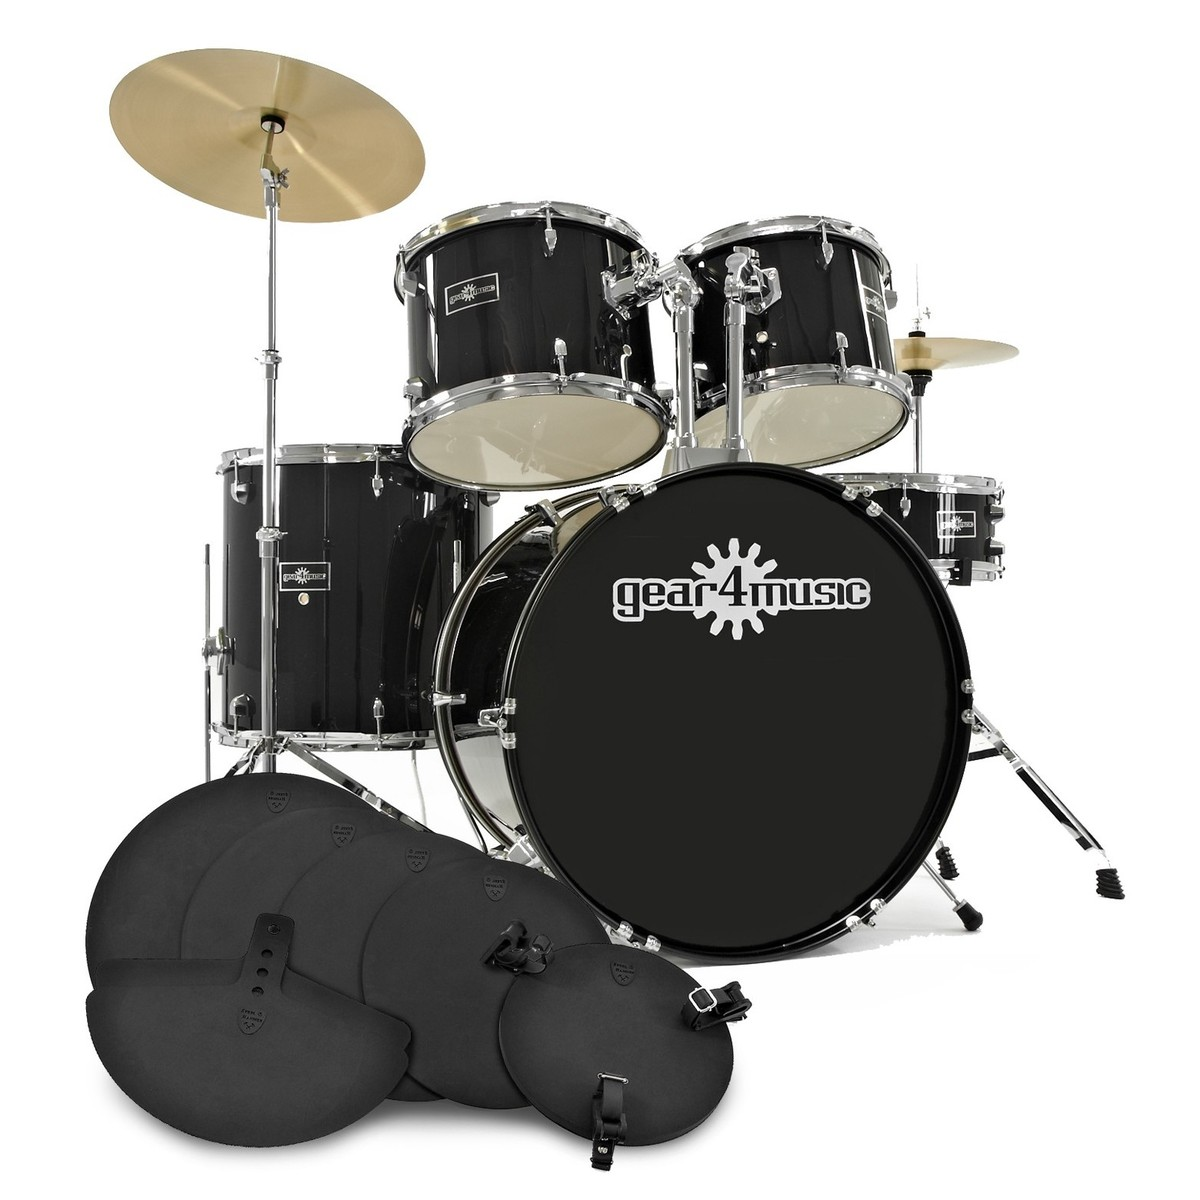 Image of GD-2 Drum Kit + Practice Pack Black